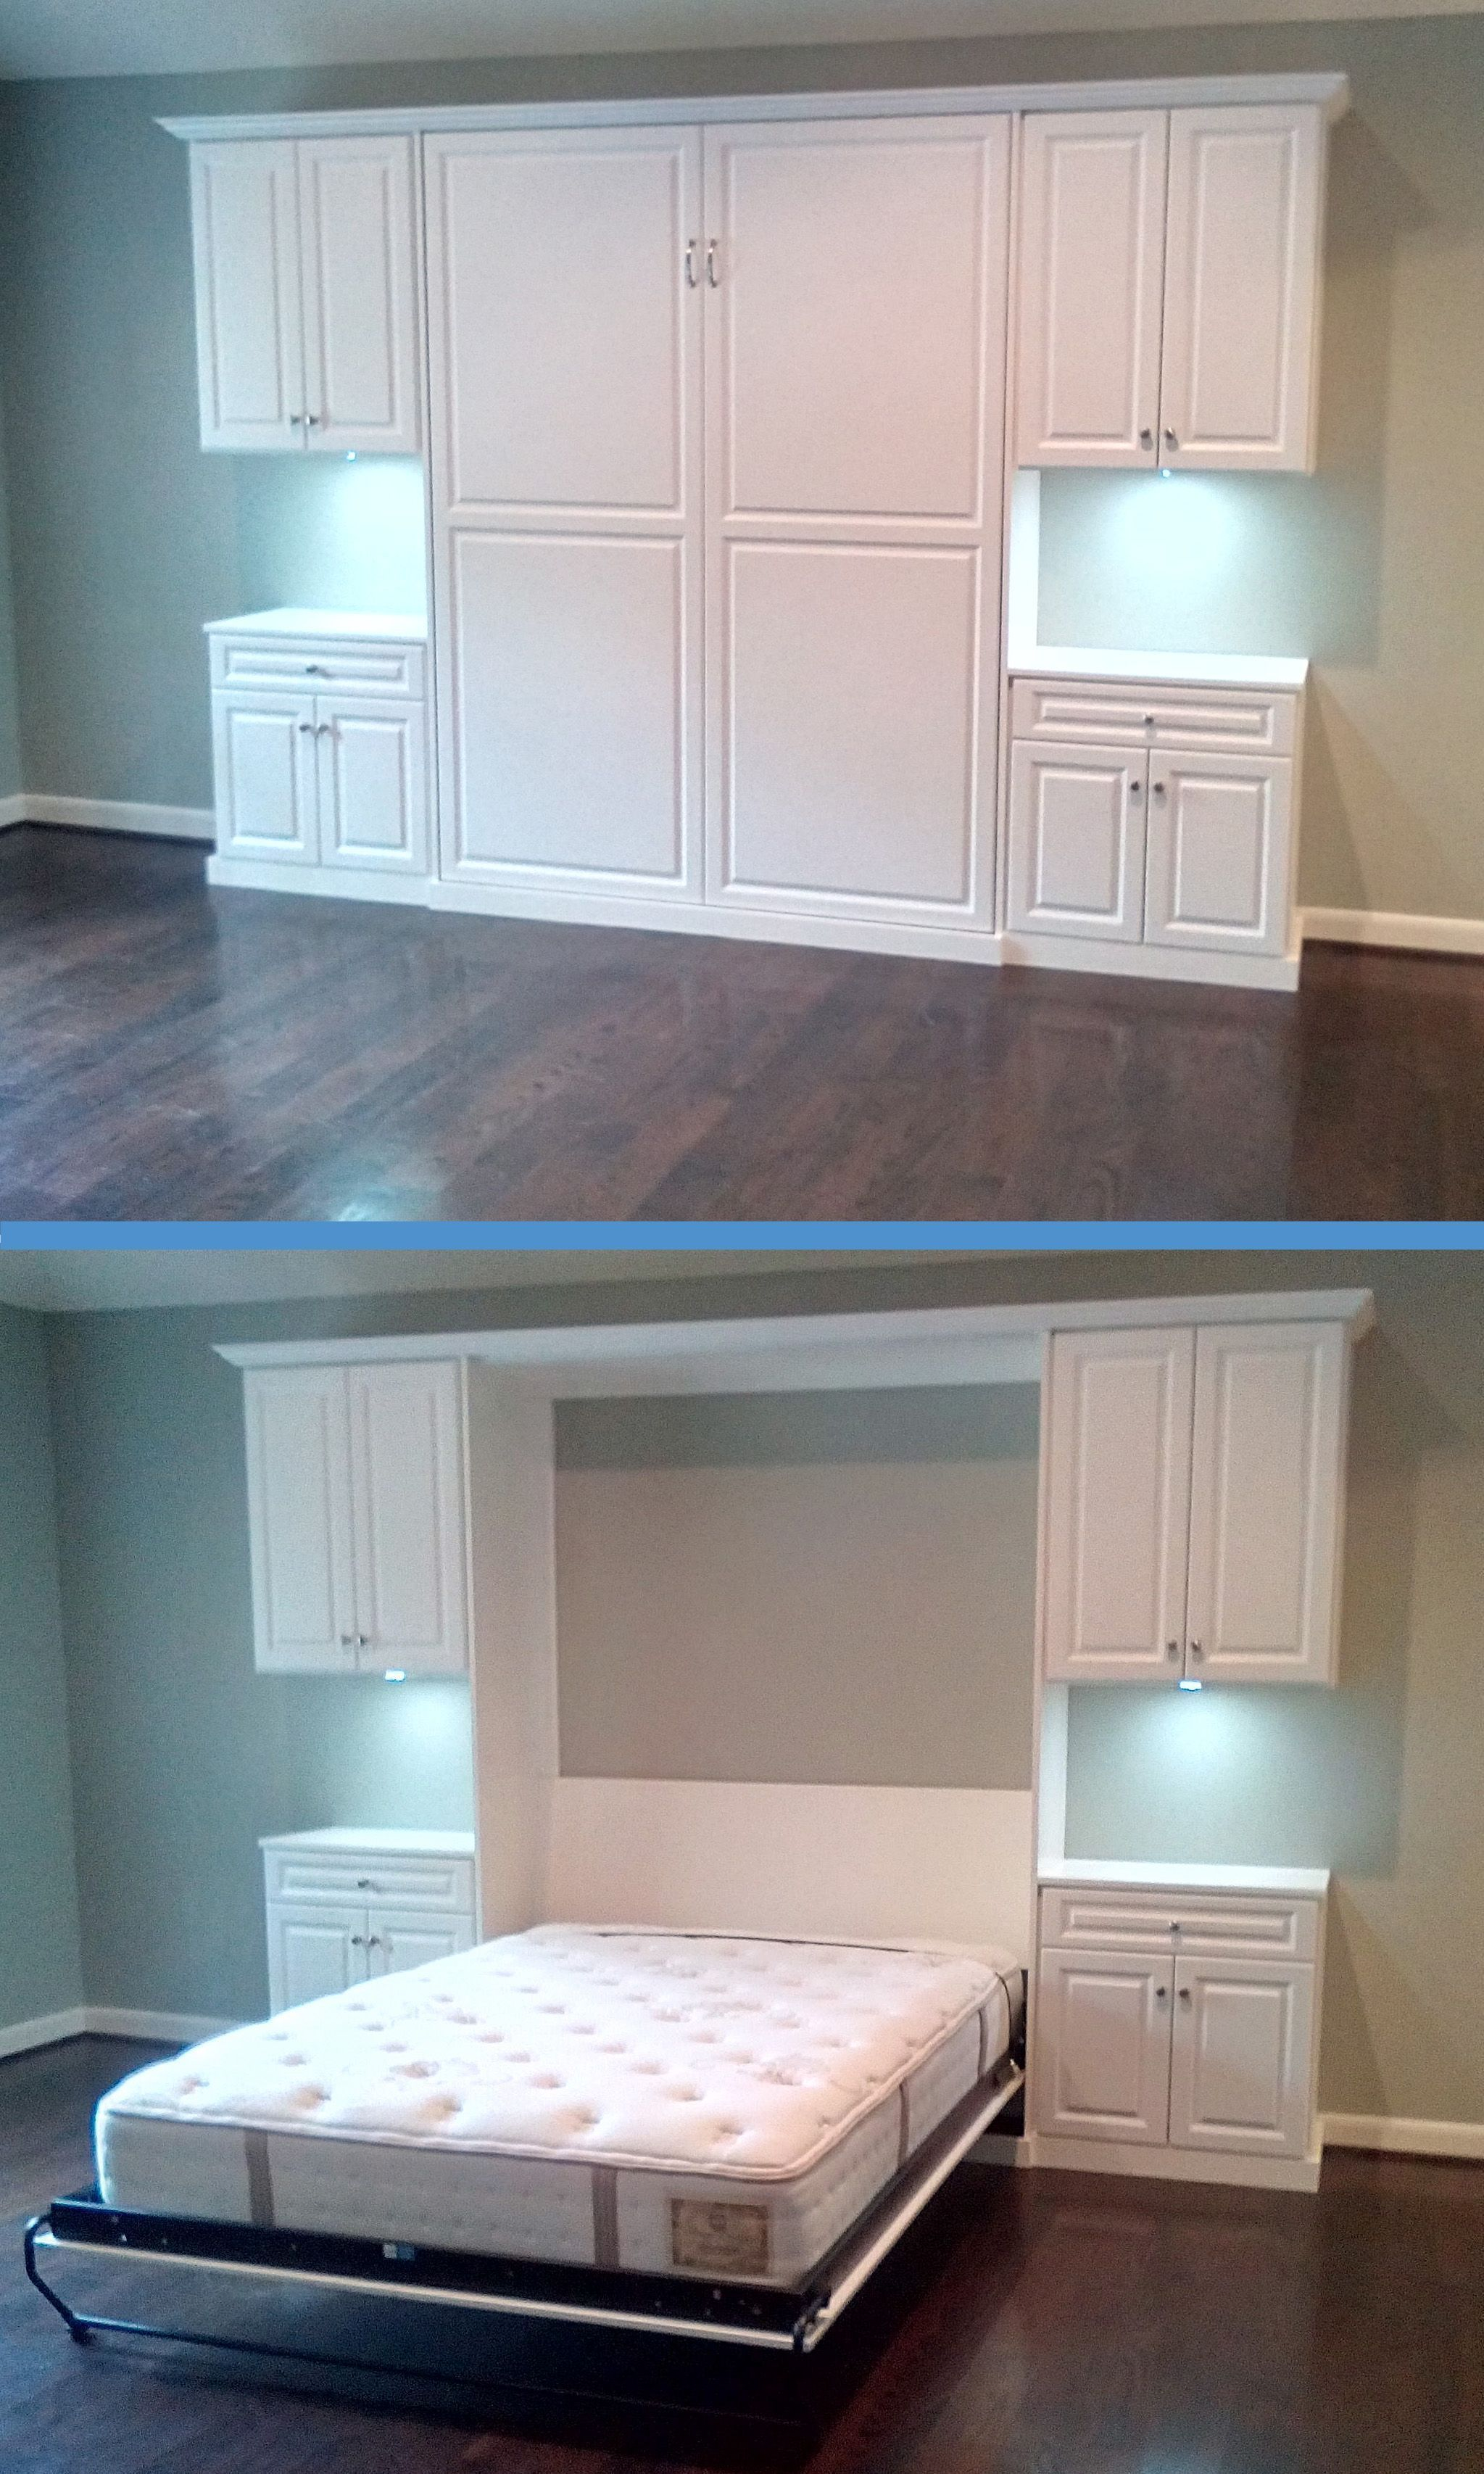 6 Great Basement Ideas That Are Exciting! Home, Remodel